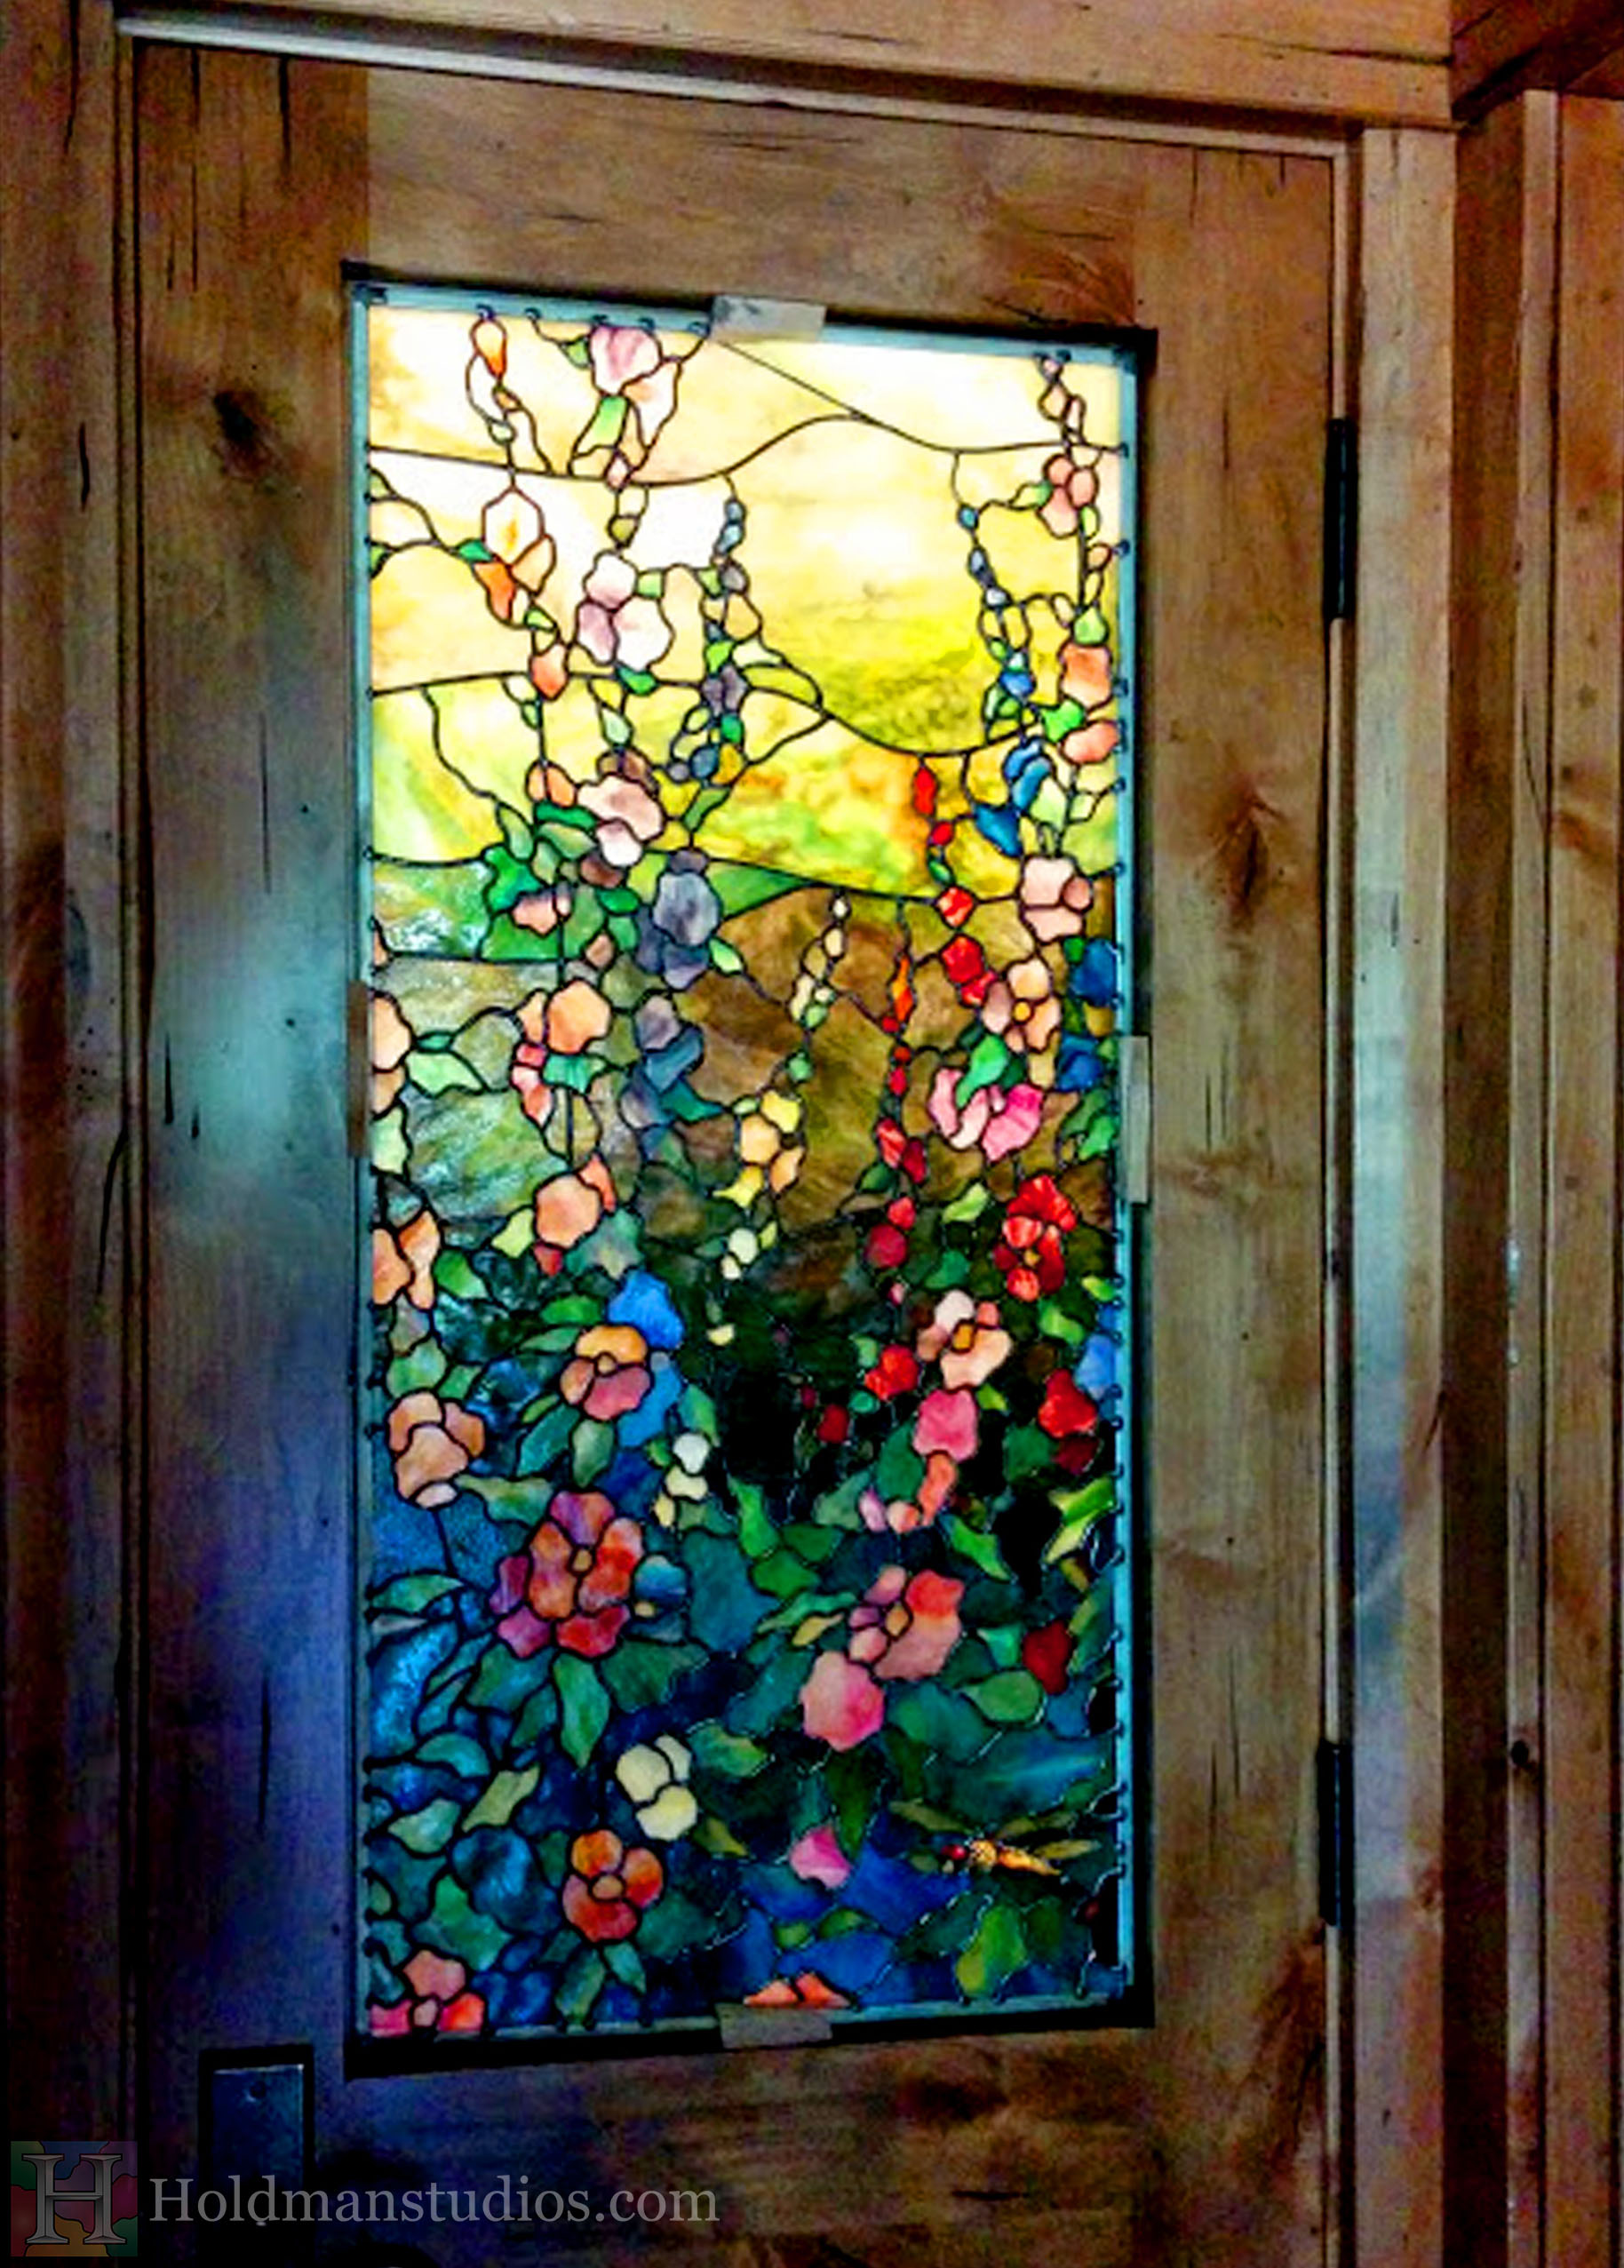 Prodigious Stained Glass Kitchen Door Window Close Up And A Cabin Retreat Hman Studios Stained Glass Doors Ireland Stained Glass Doors Glasgow houzz-02 Stained Glass Doors